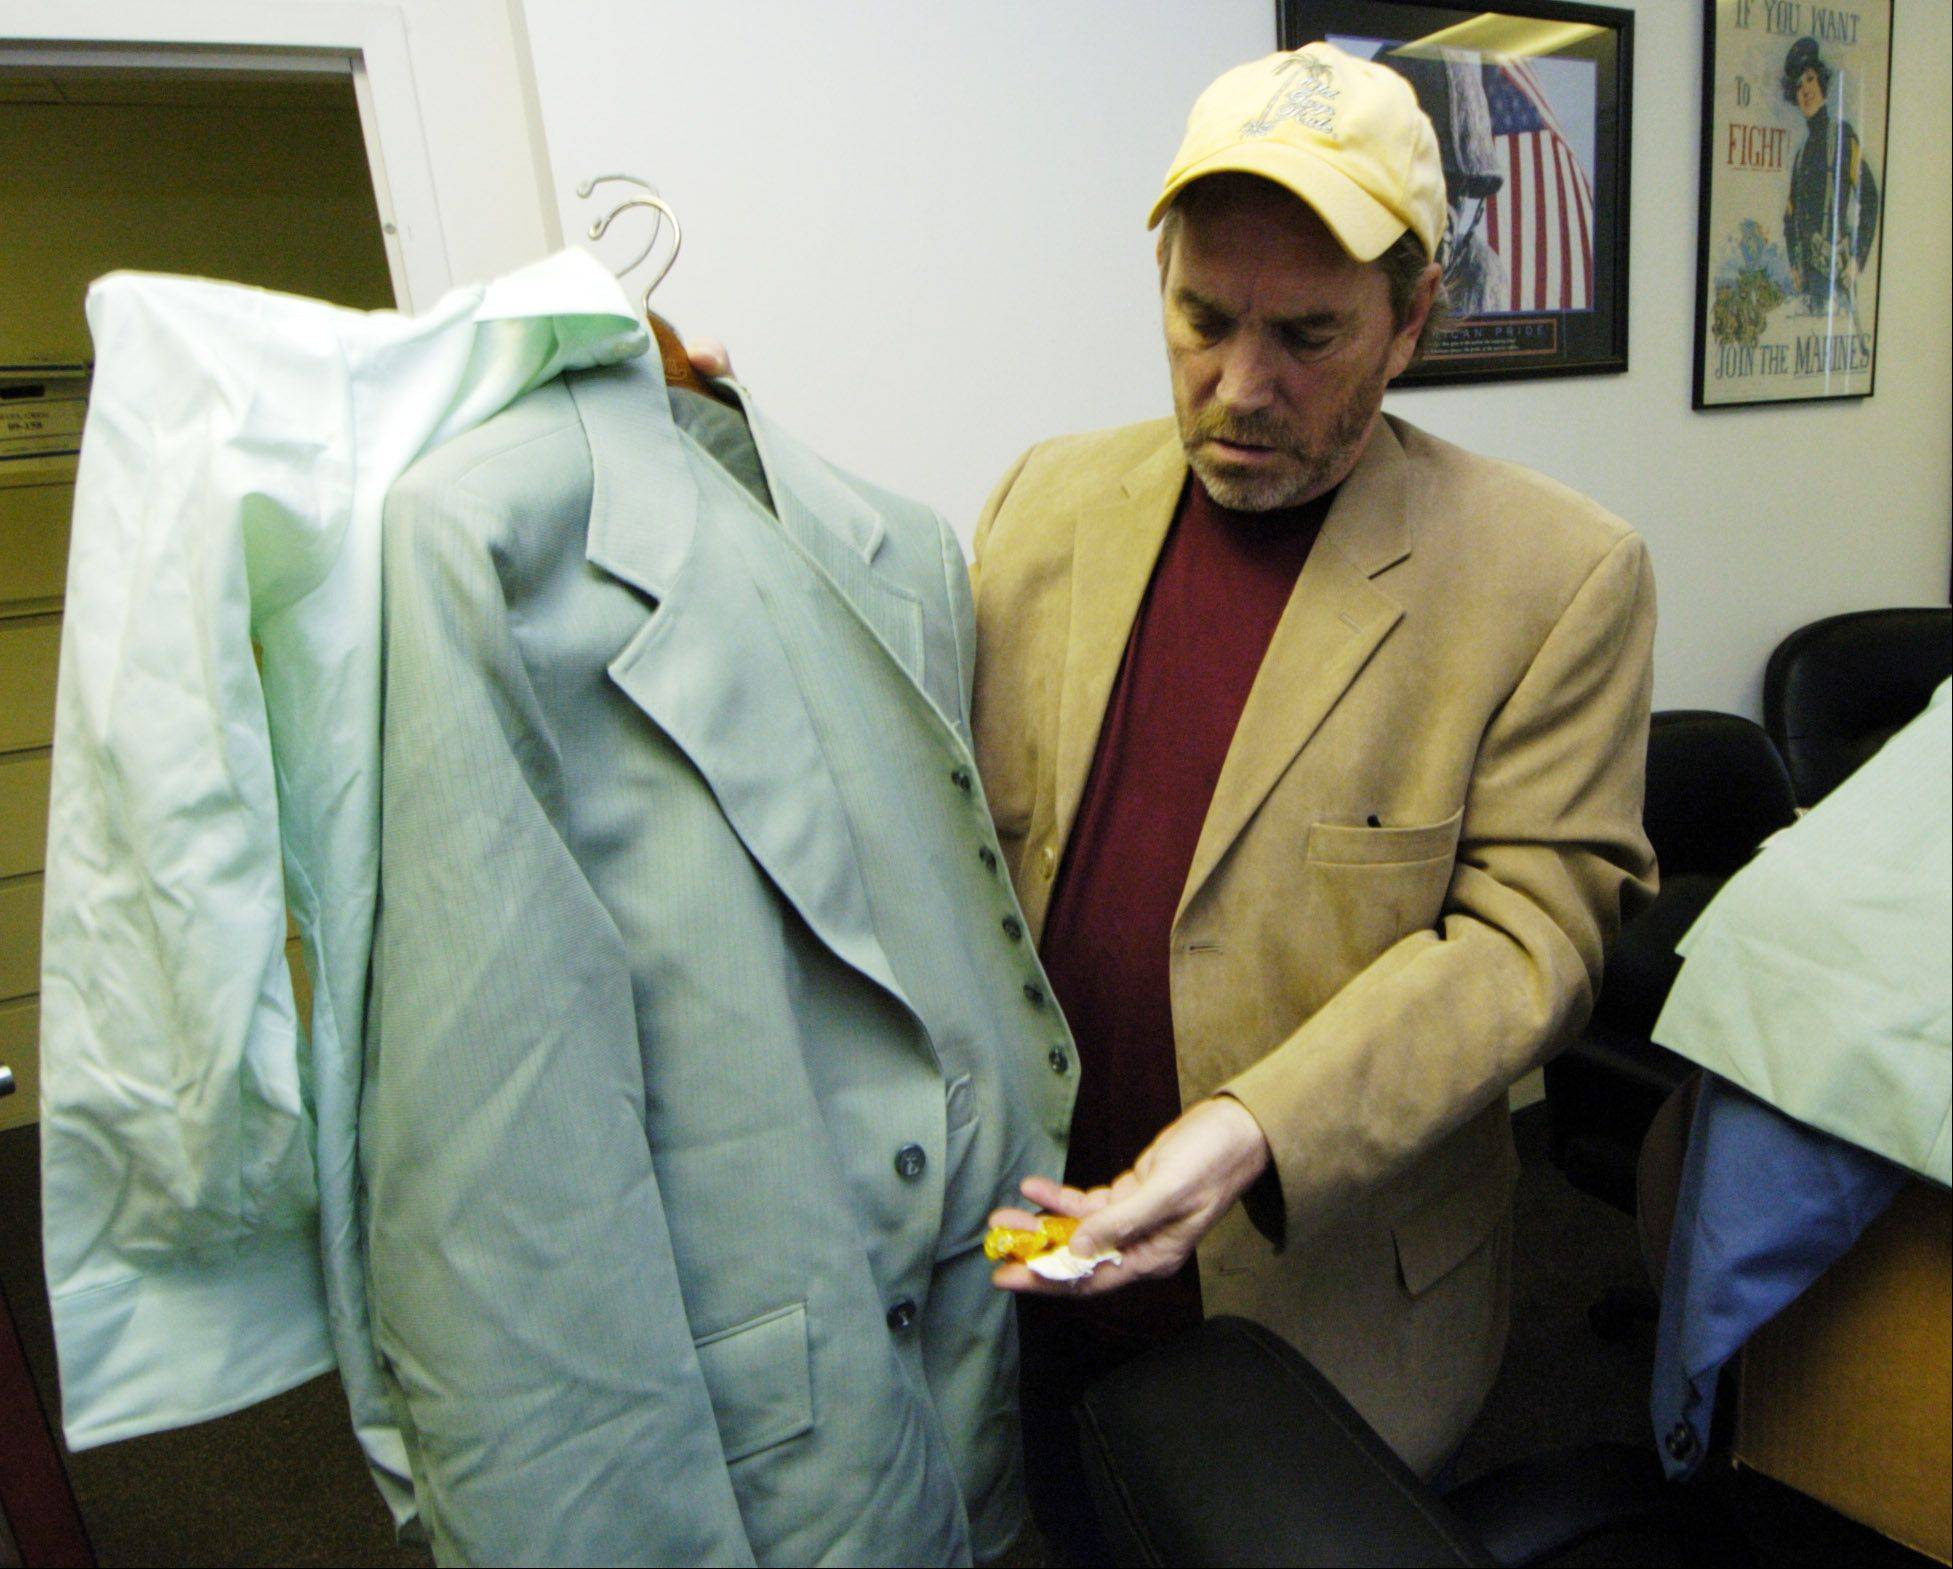 "Danny Broderick holds a suit which notorious killer John Wayne Gacy wore to court in 1980. One pocket of the suit still holds butterscotch candies. Broderick co-authored a book with Sam Amirante, John Wayne Gacy's defense attorney, entitled, ""Defending a Monster."""